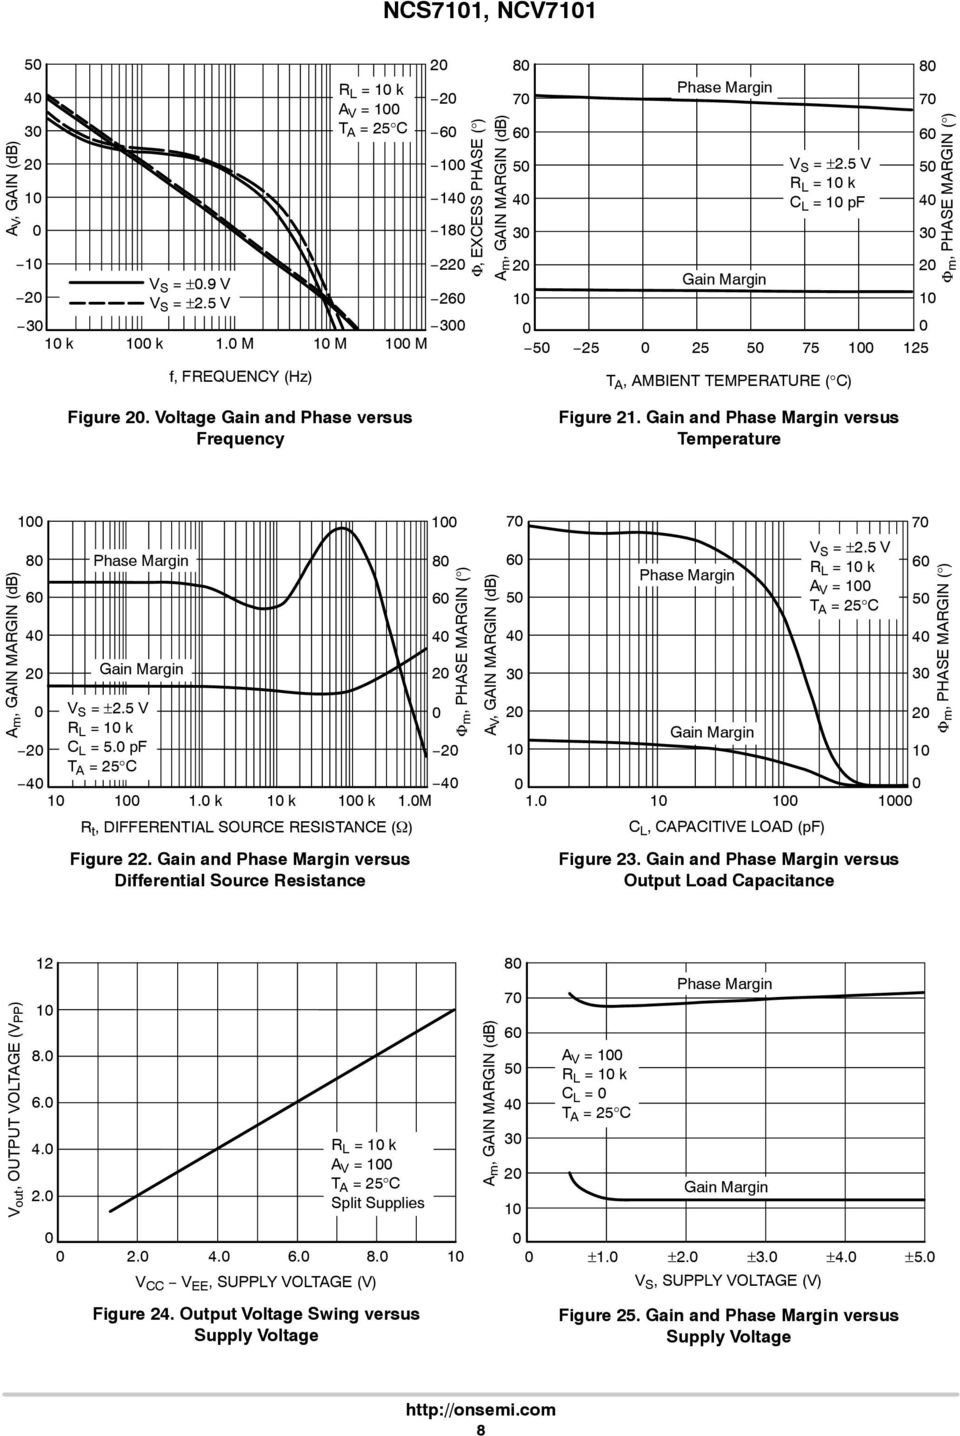 8 7 6 5 4 3 2 1 Φ m, PHASE MARGIN ( ) Figure 2. Voltage Gain and Phase versus Frequency Figure 21.